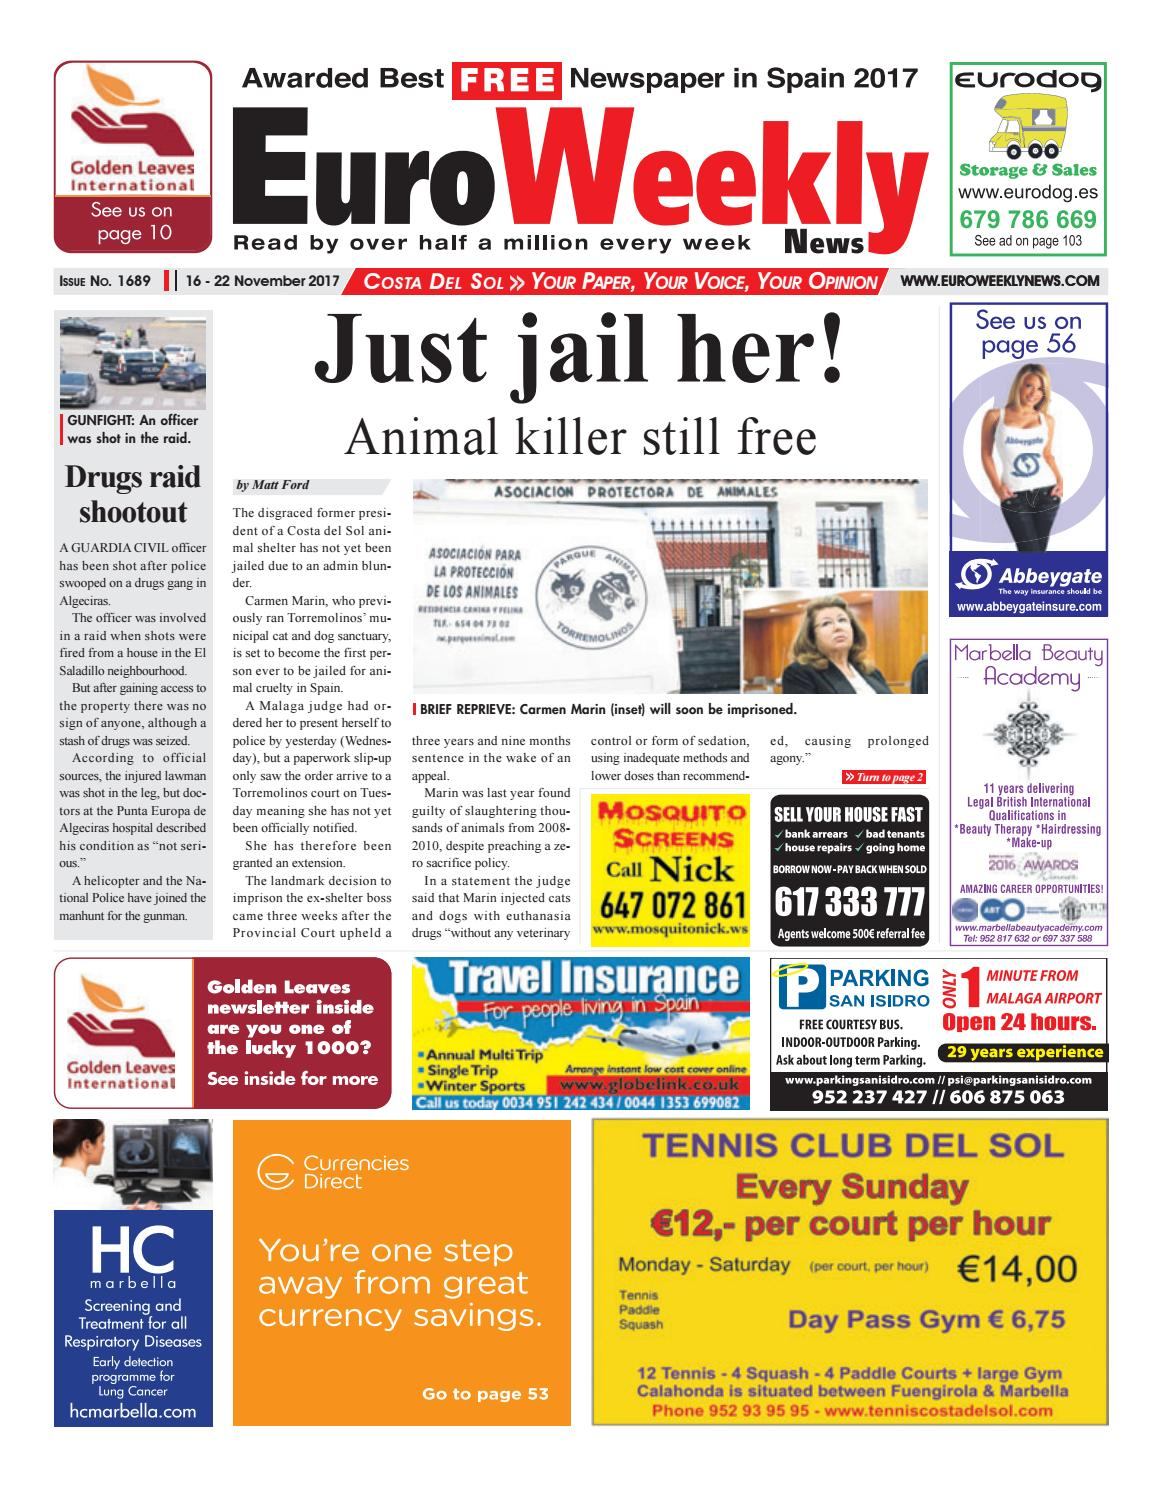 euro weekly news costa del sol 16 22 november 2017 issue 1689 by